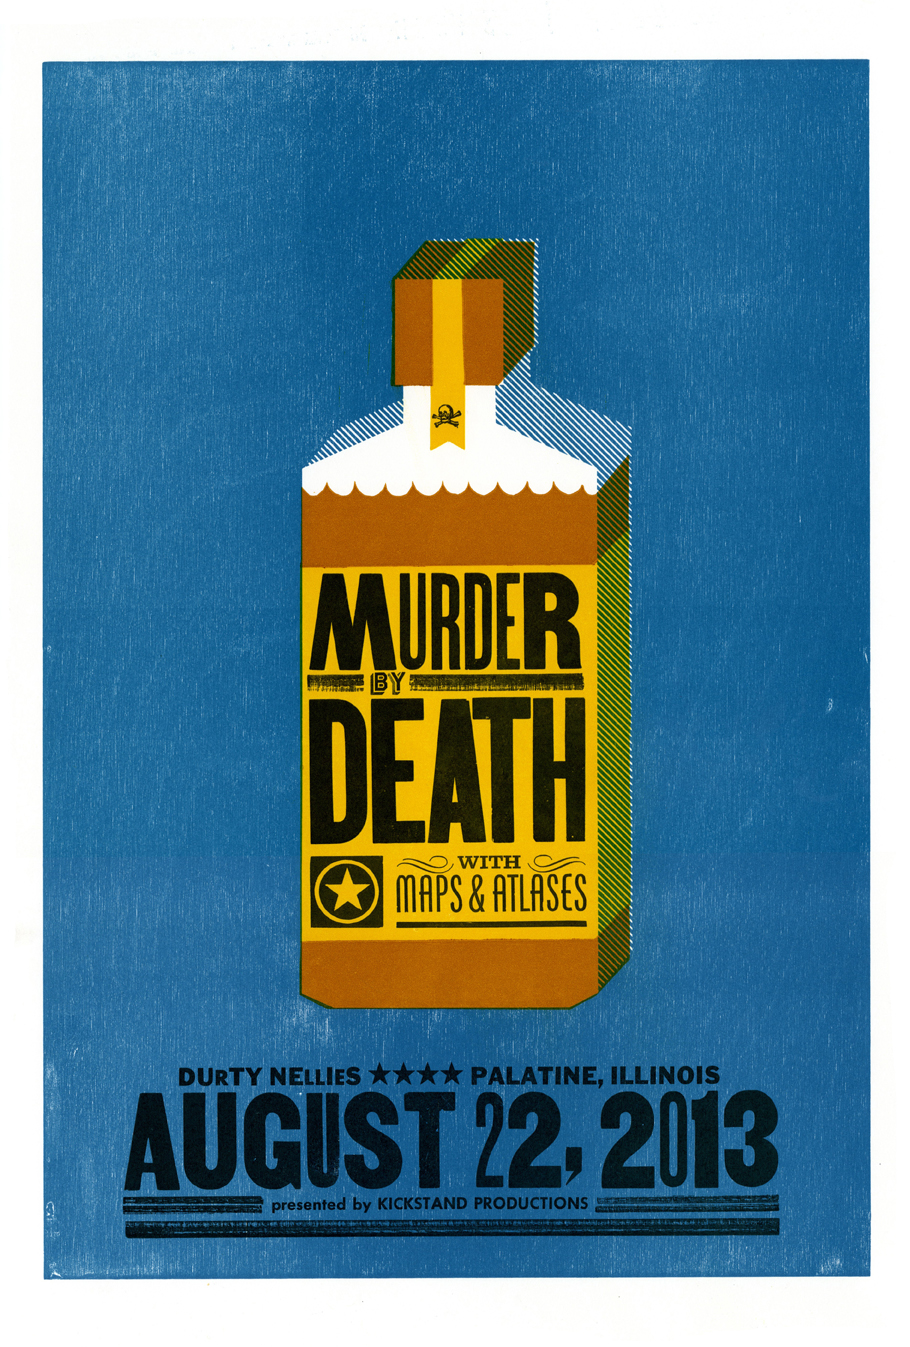 Murder By Death, 4-color letterpress show poster, 2013